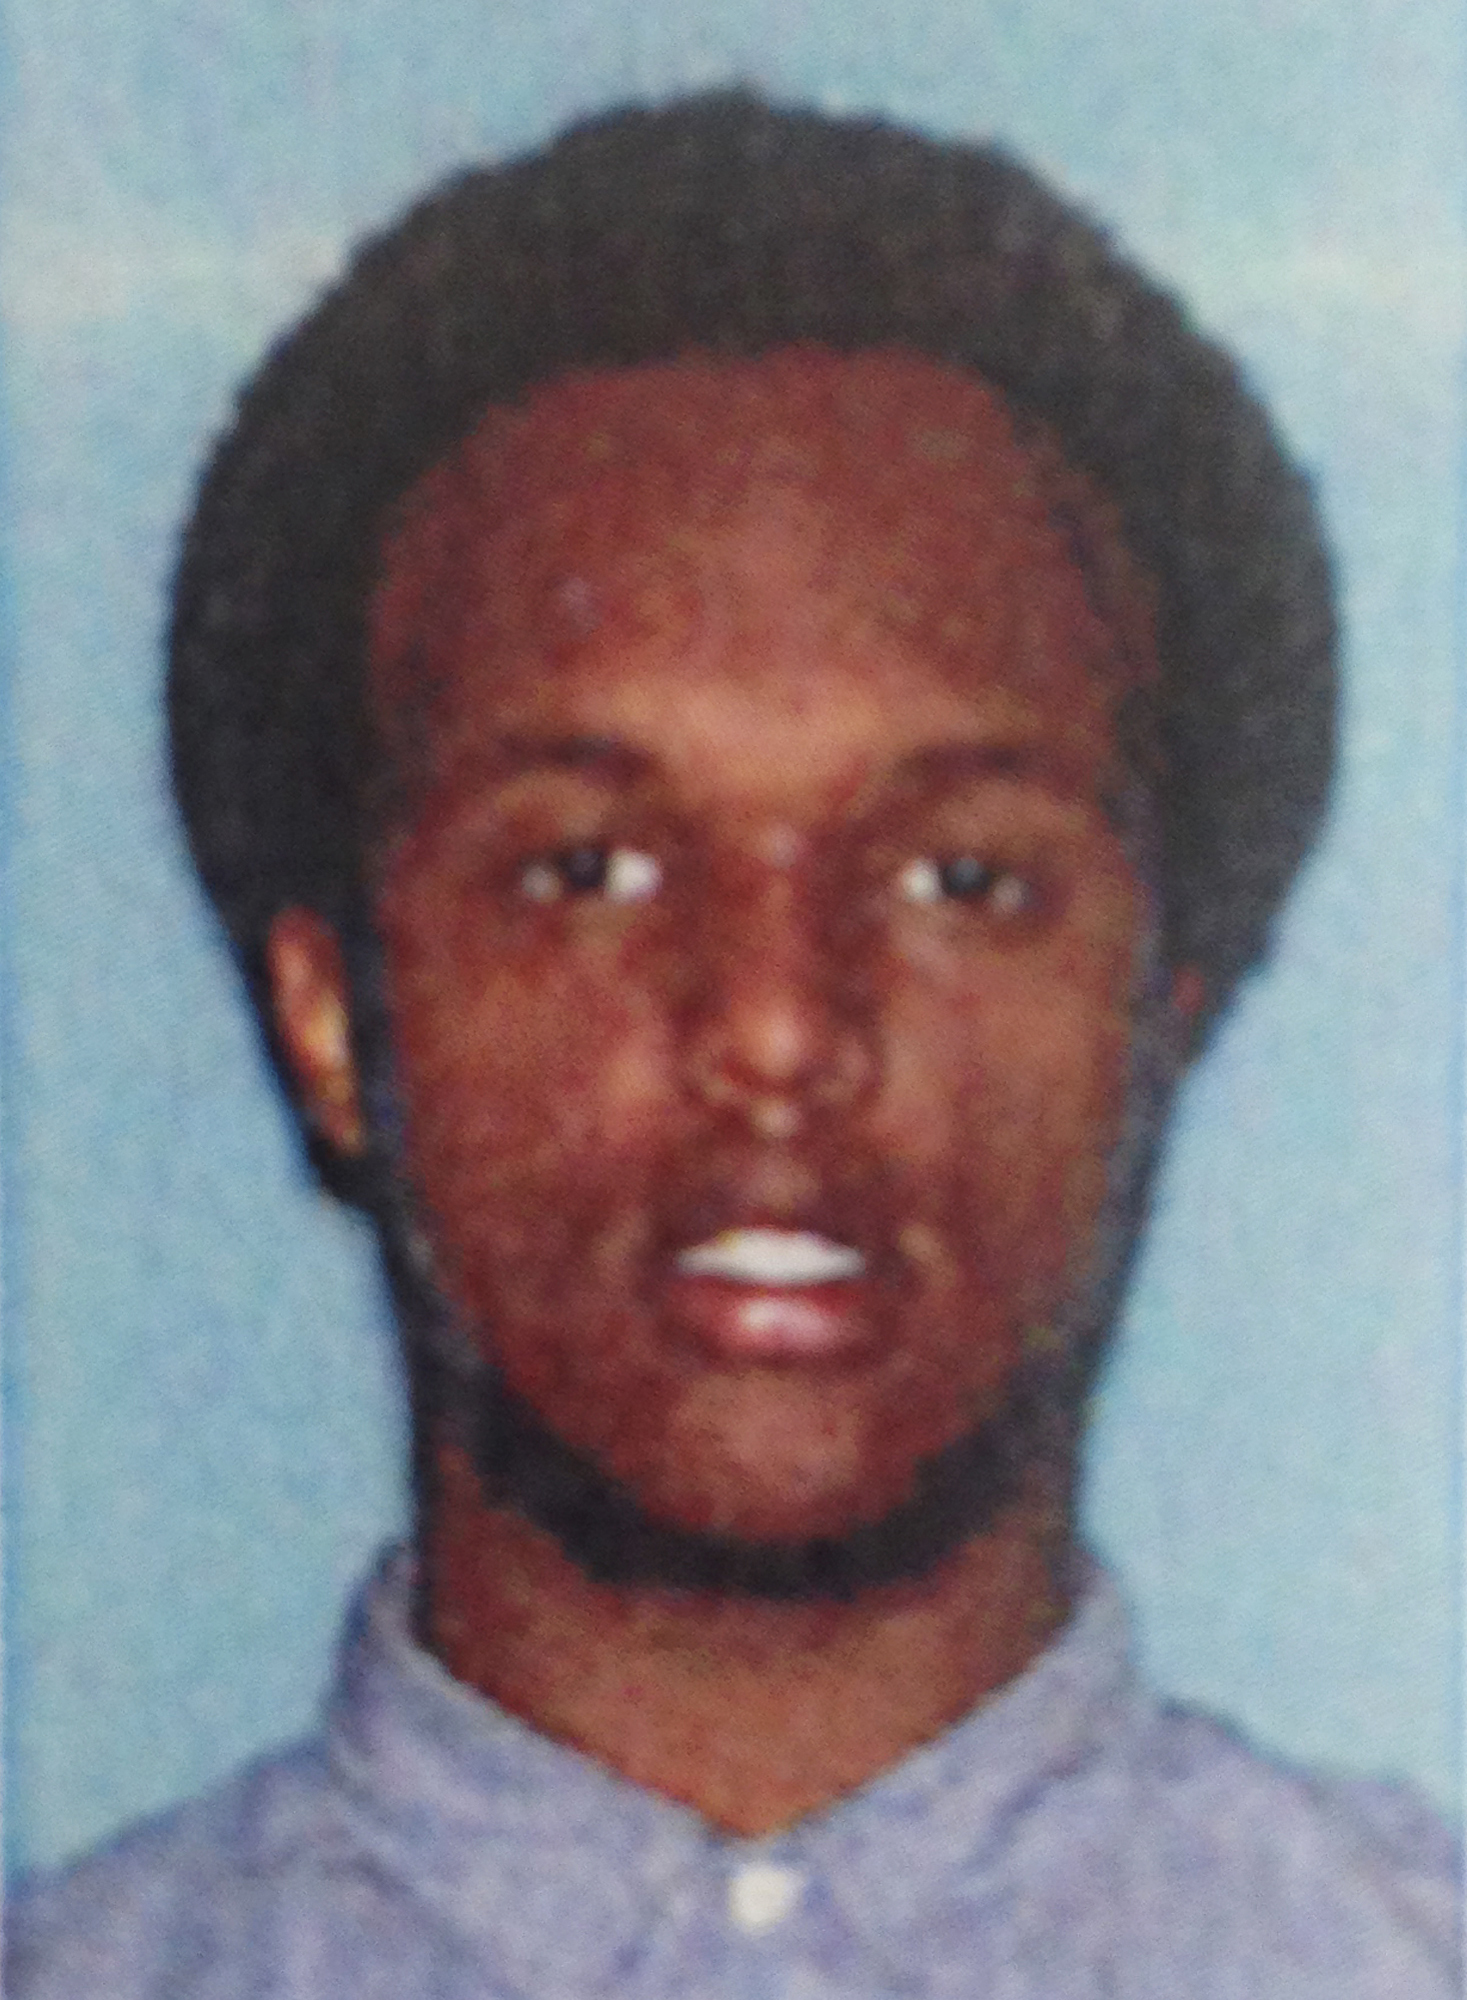 This undated file photo provided by the U.S. Attorney's Office shows Mohamed Roble, a survivor of the 2007 Minneapolis bridge collapse. Roble was charged Aug. 24, 2016, with providing and conspiring to provide material support to a foreign terrorist organization.